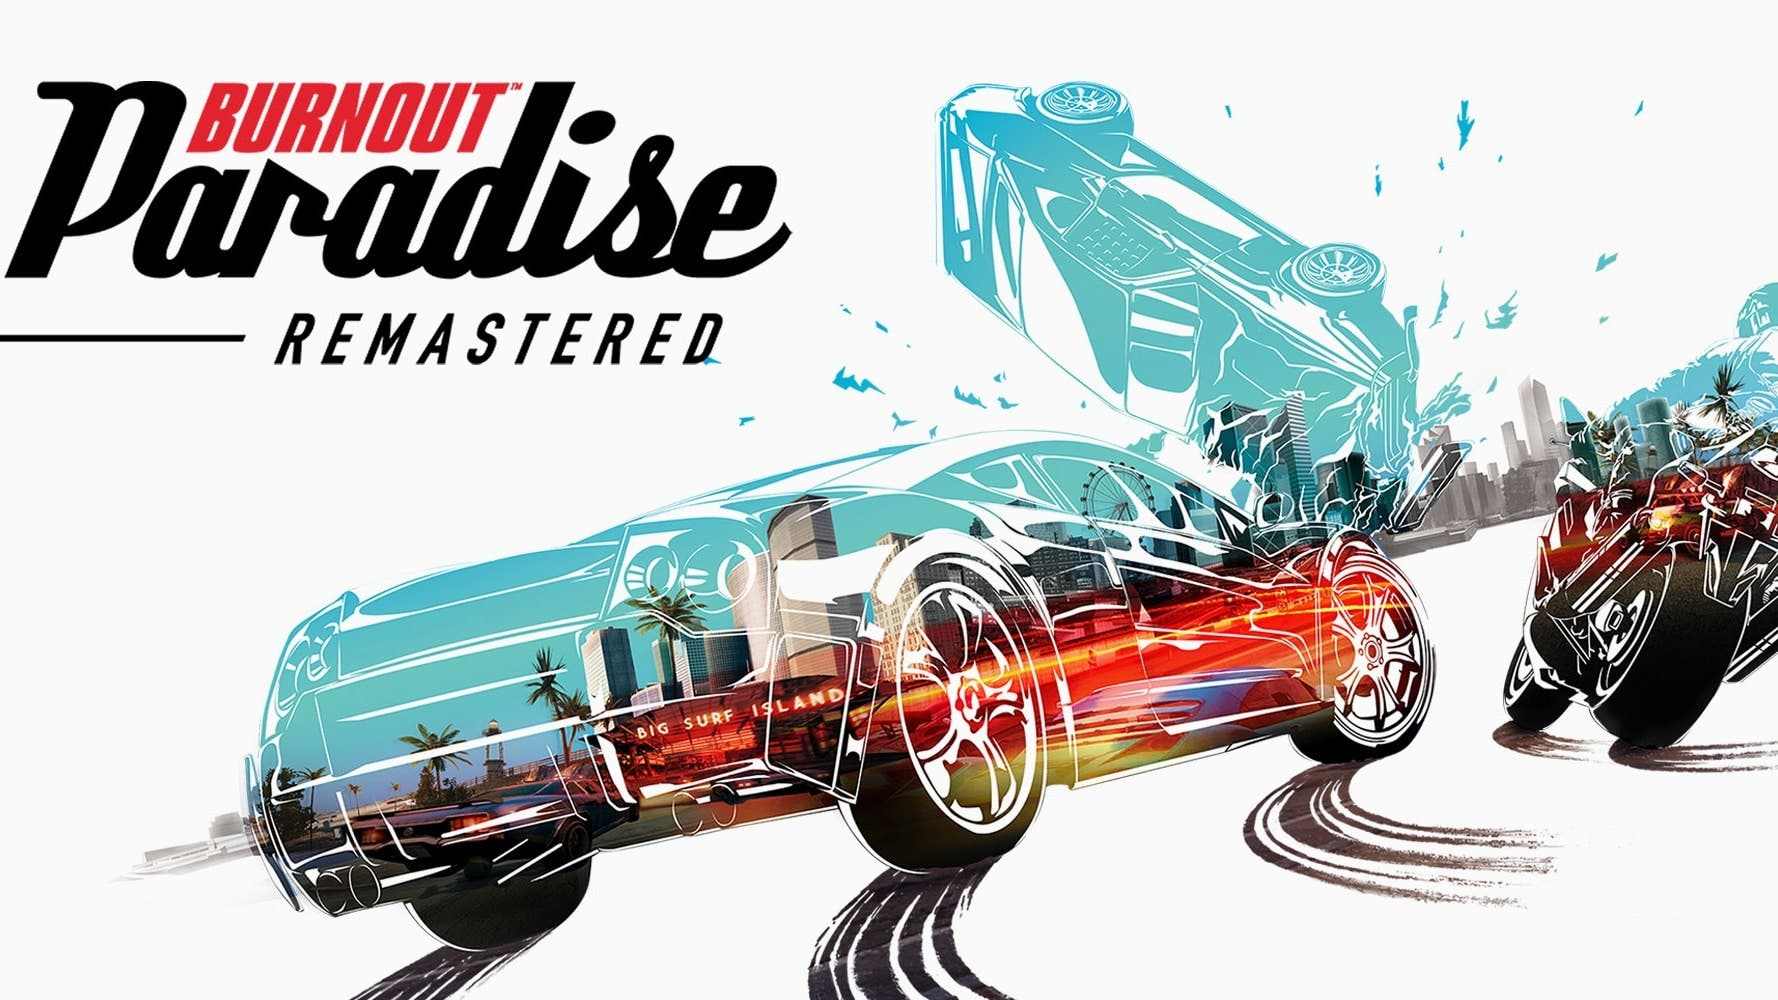 EA reduce de forma permanente el precio de Burnout Paradise Remastered en la eShop de Switch